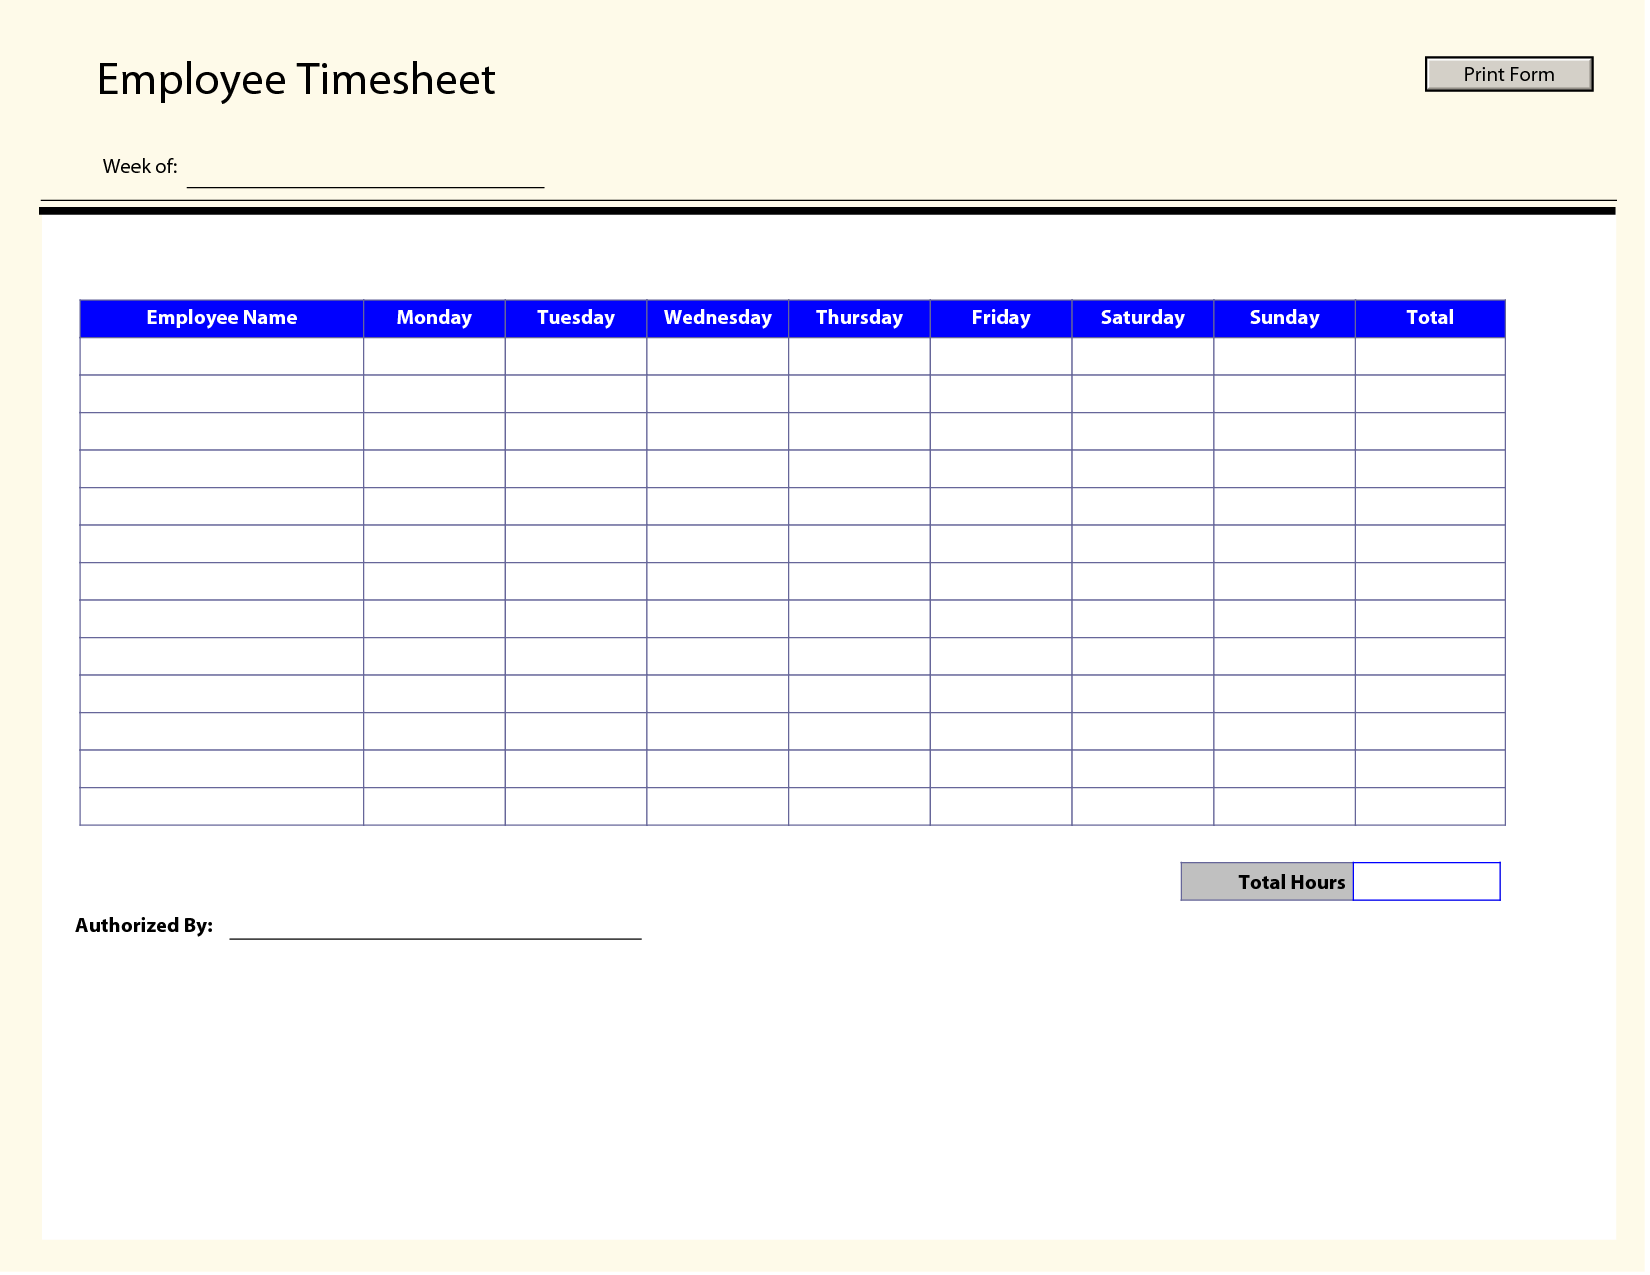 Printable time sheets free employee timesheets timesheet print form week also rh pinterest